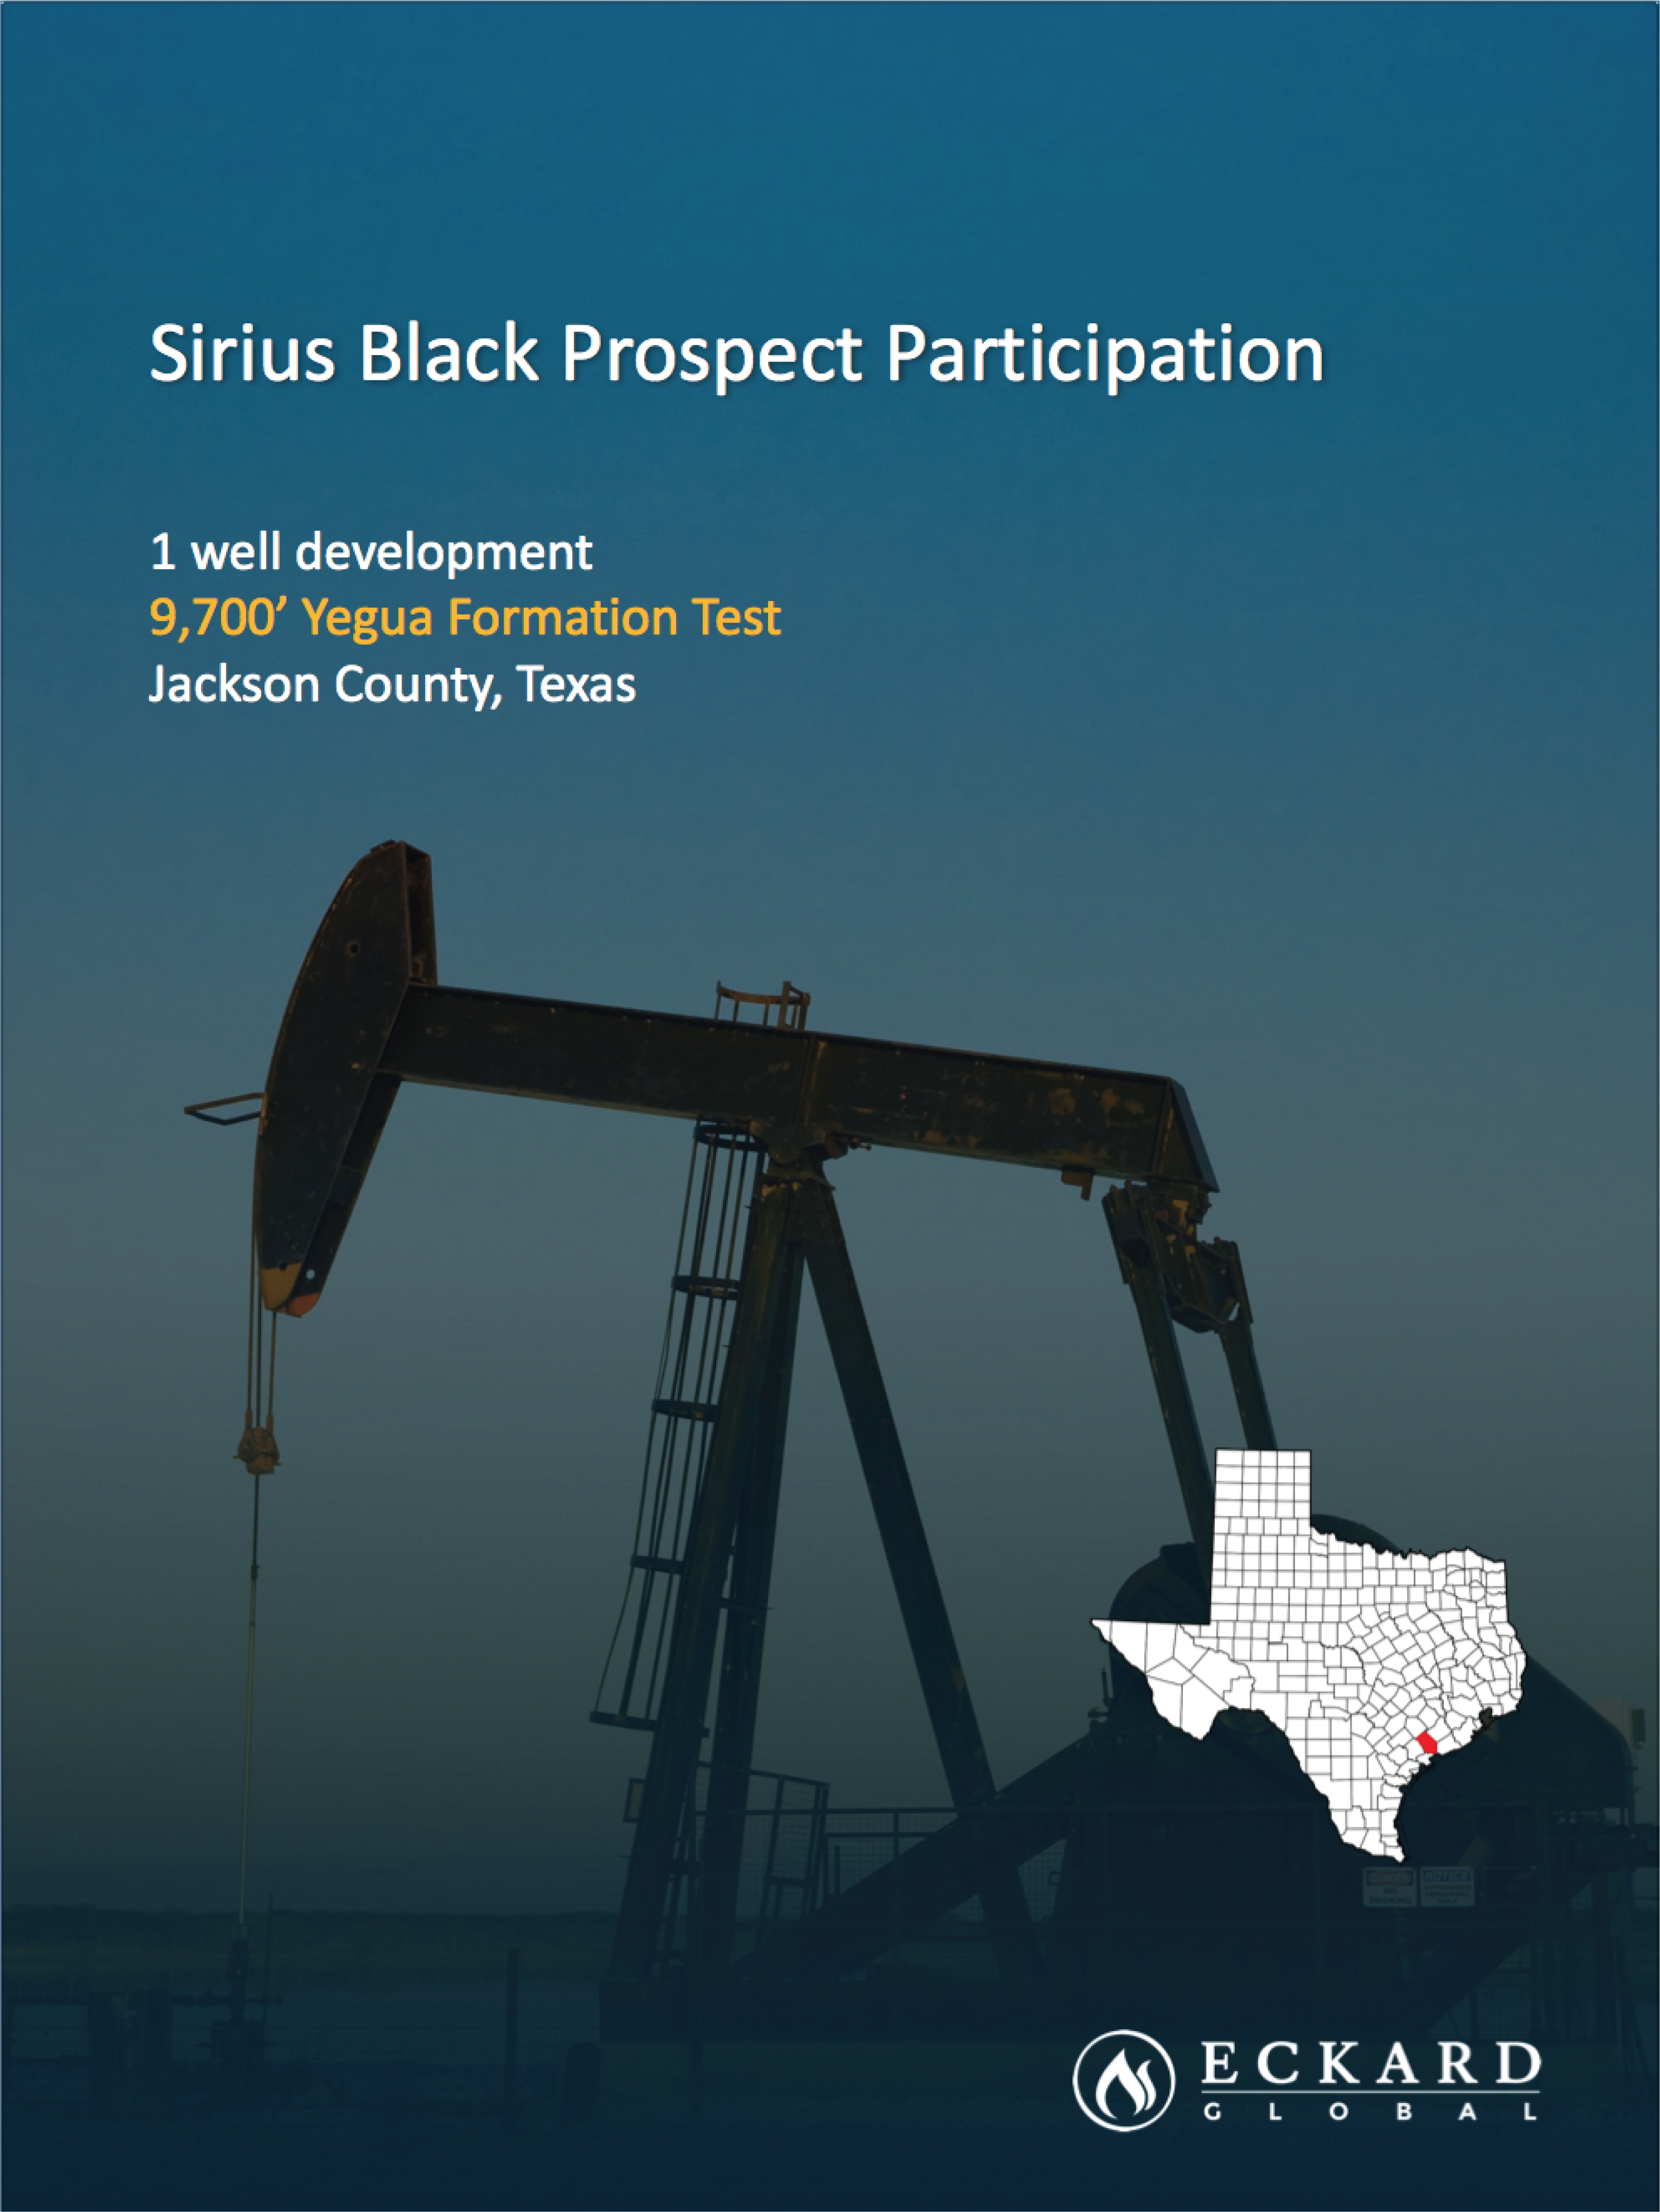 oil-prospect-sirius-black